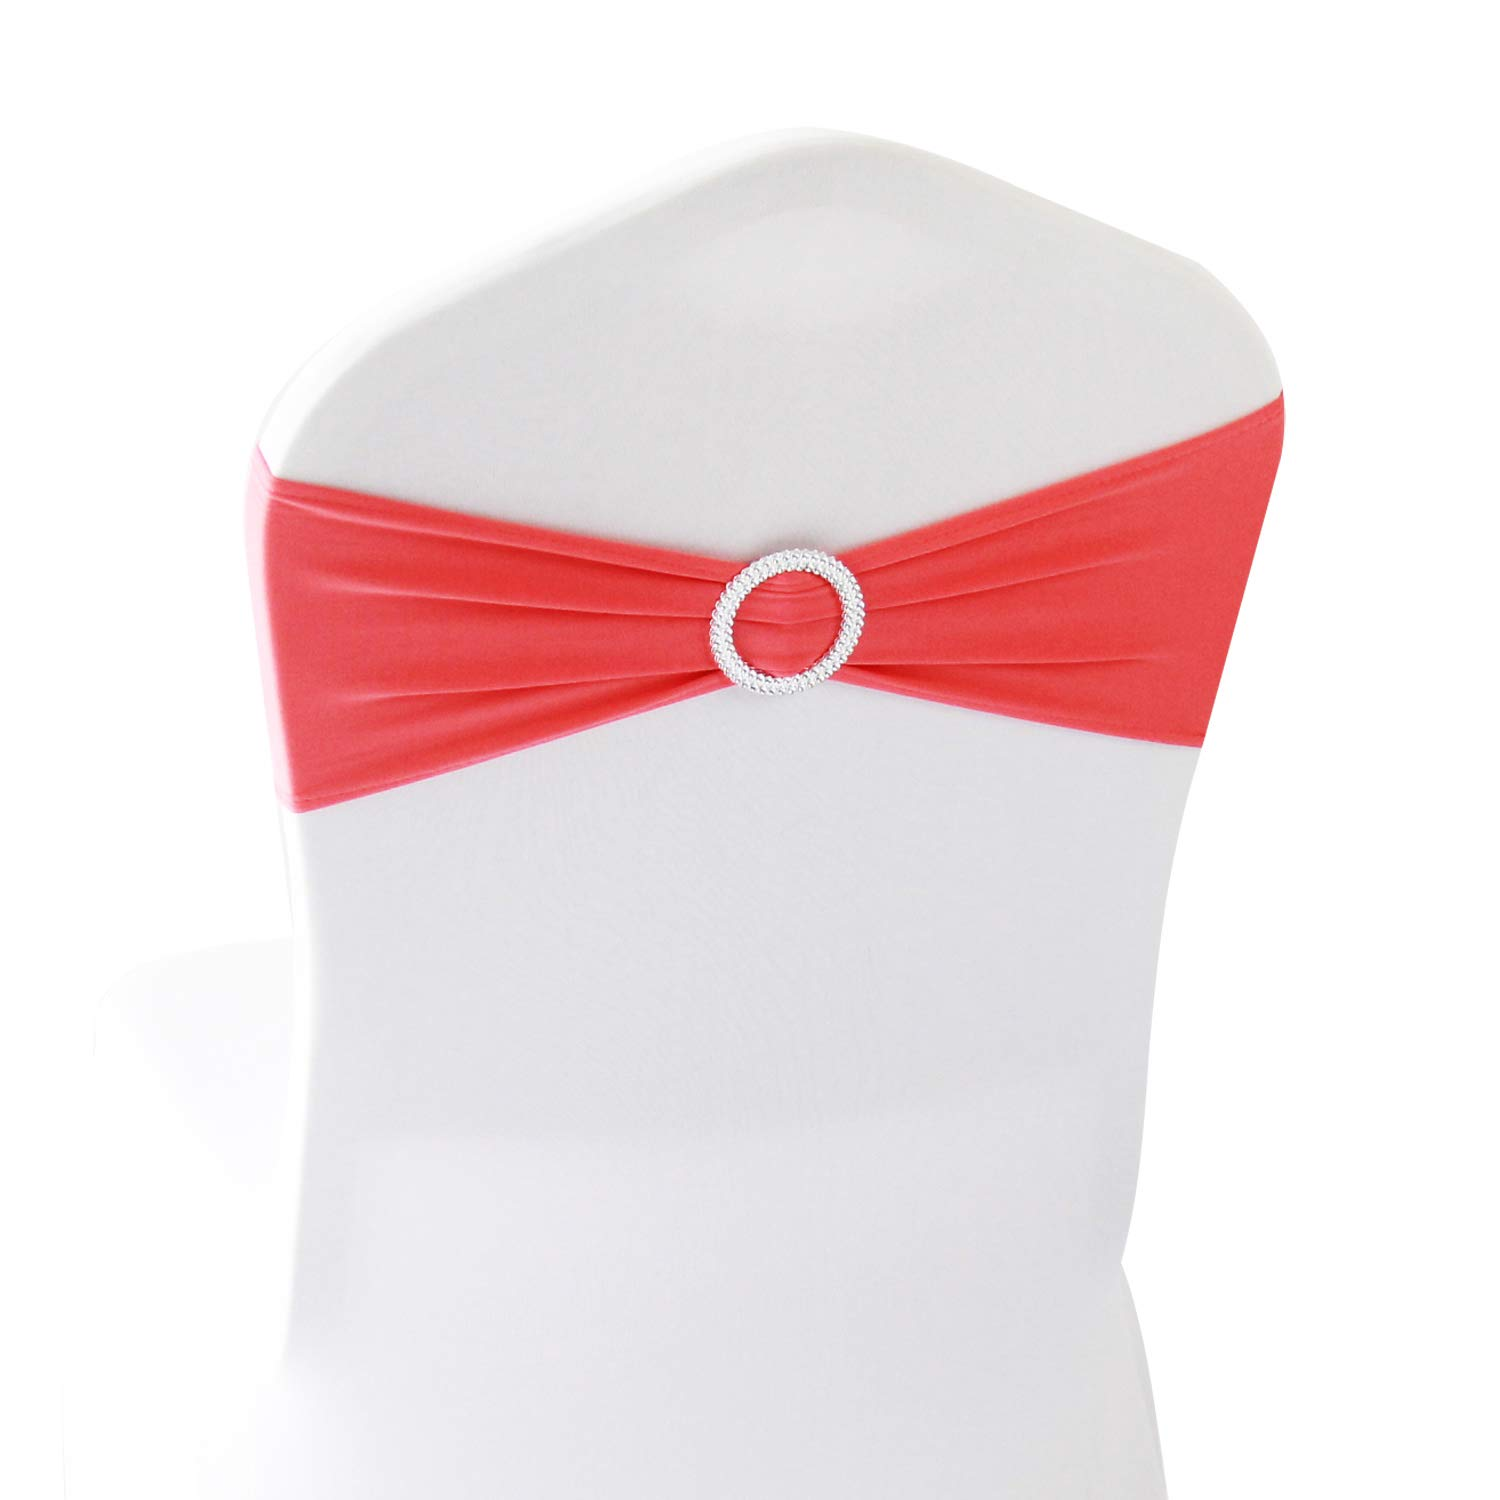 Coral Spandex Chair Bands Sashes - 12 pcs Wedding Banquet Party Event Decoration Chair Bows Ties (Coral, 12 pcs)